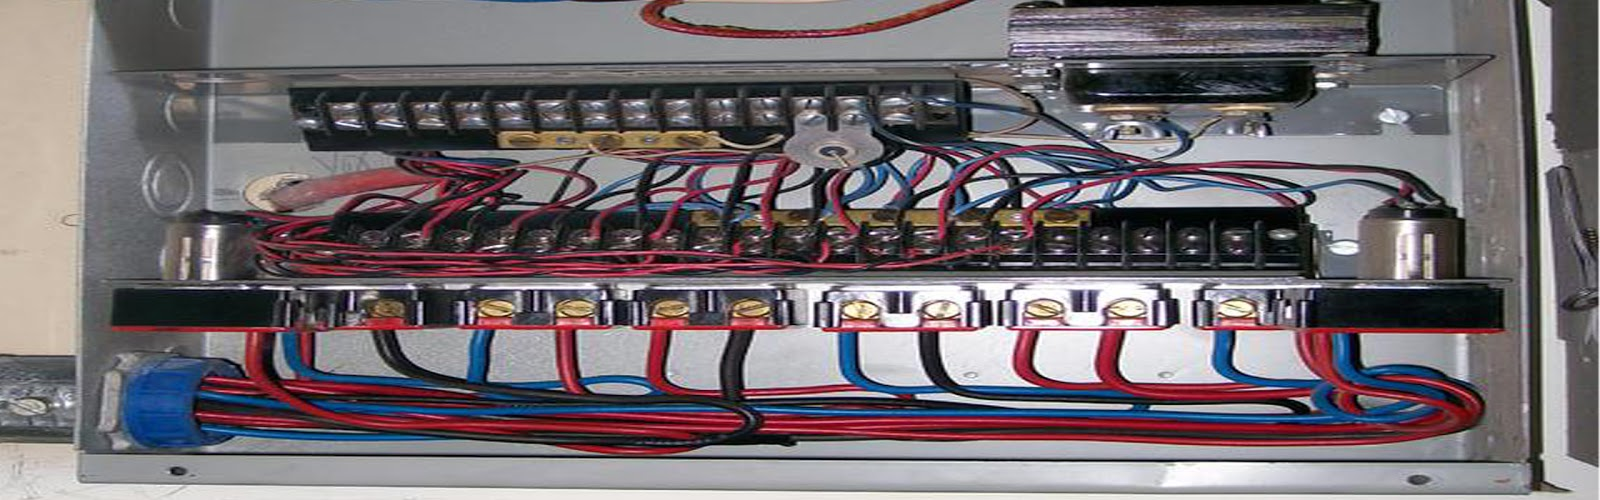 medium resolution of offering conventional electrical services such as adding circuits and trouble shooting as well as less conventional services including low voltage wiring